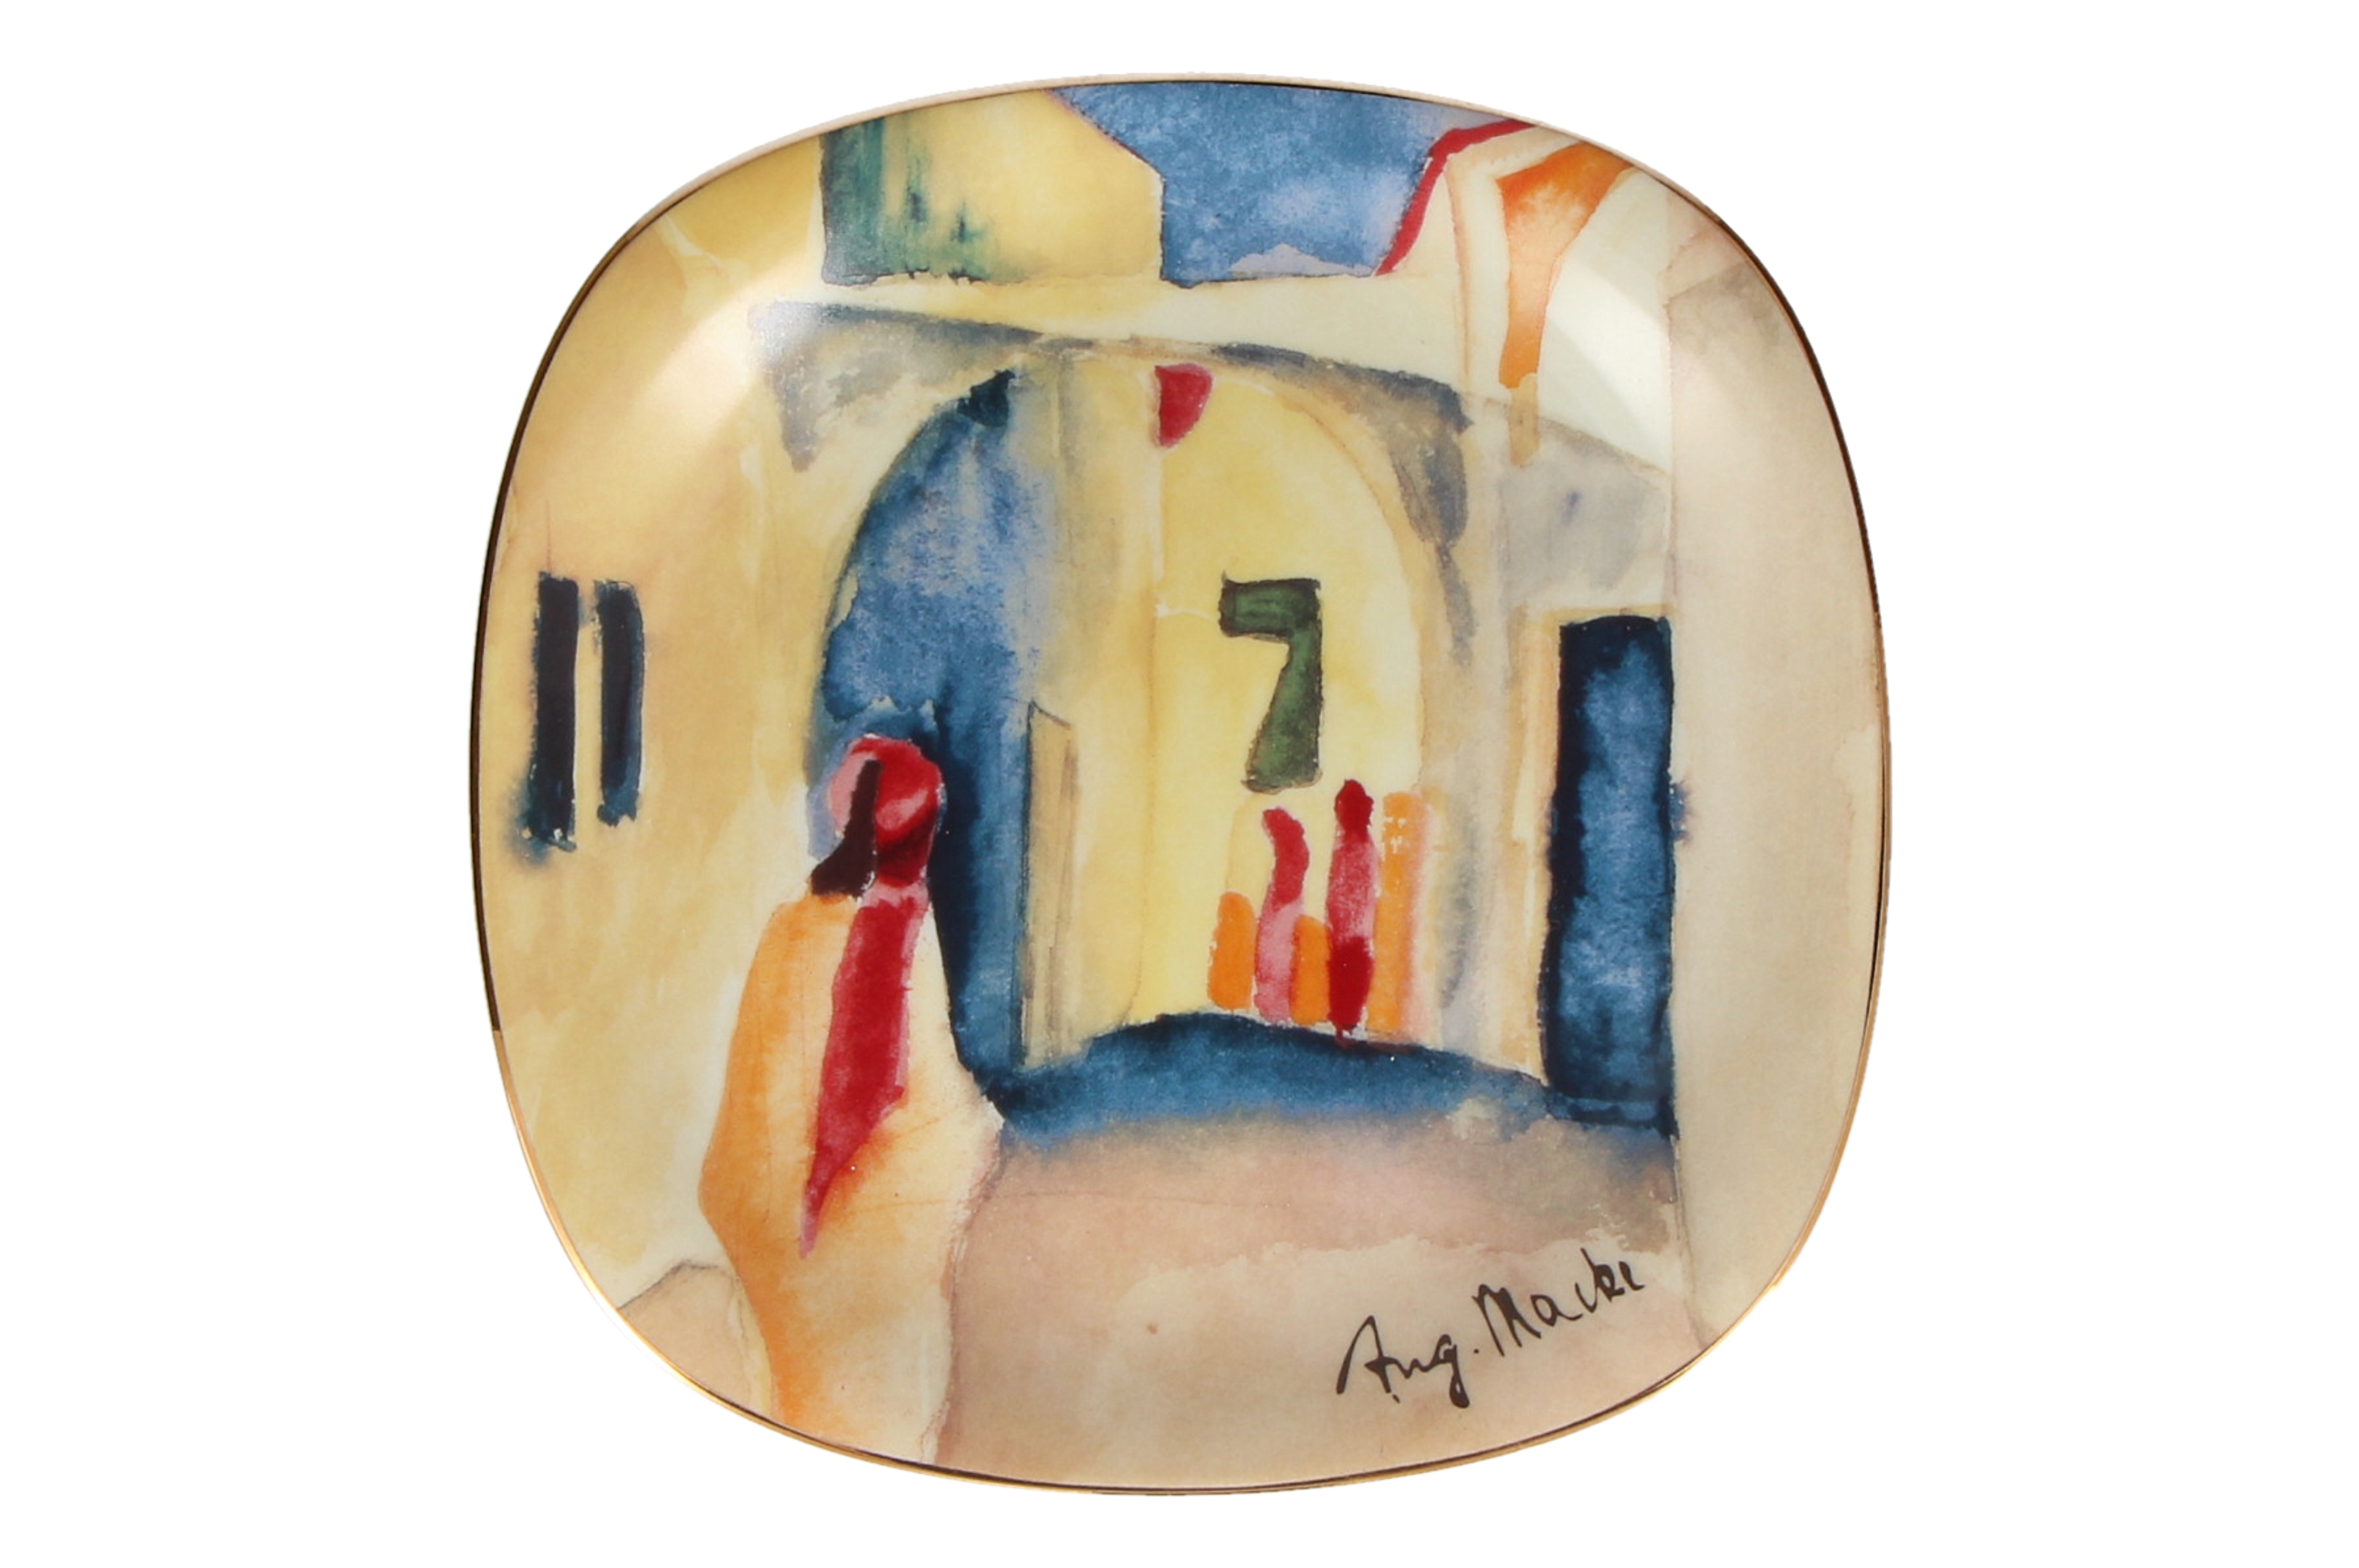 A ROSENTHAL CLASSIC August Macke wall plate 'Blick in eine